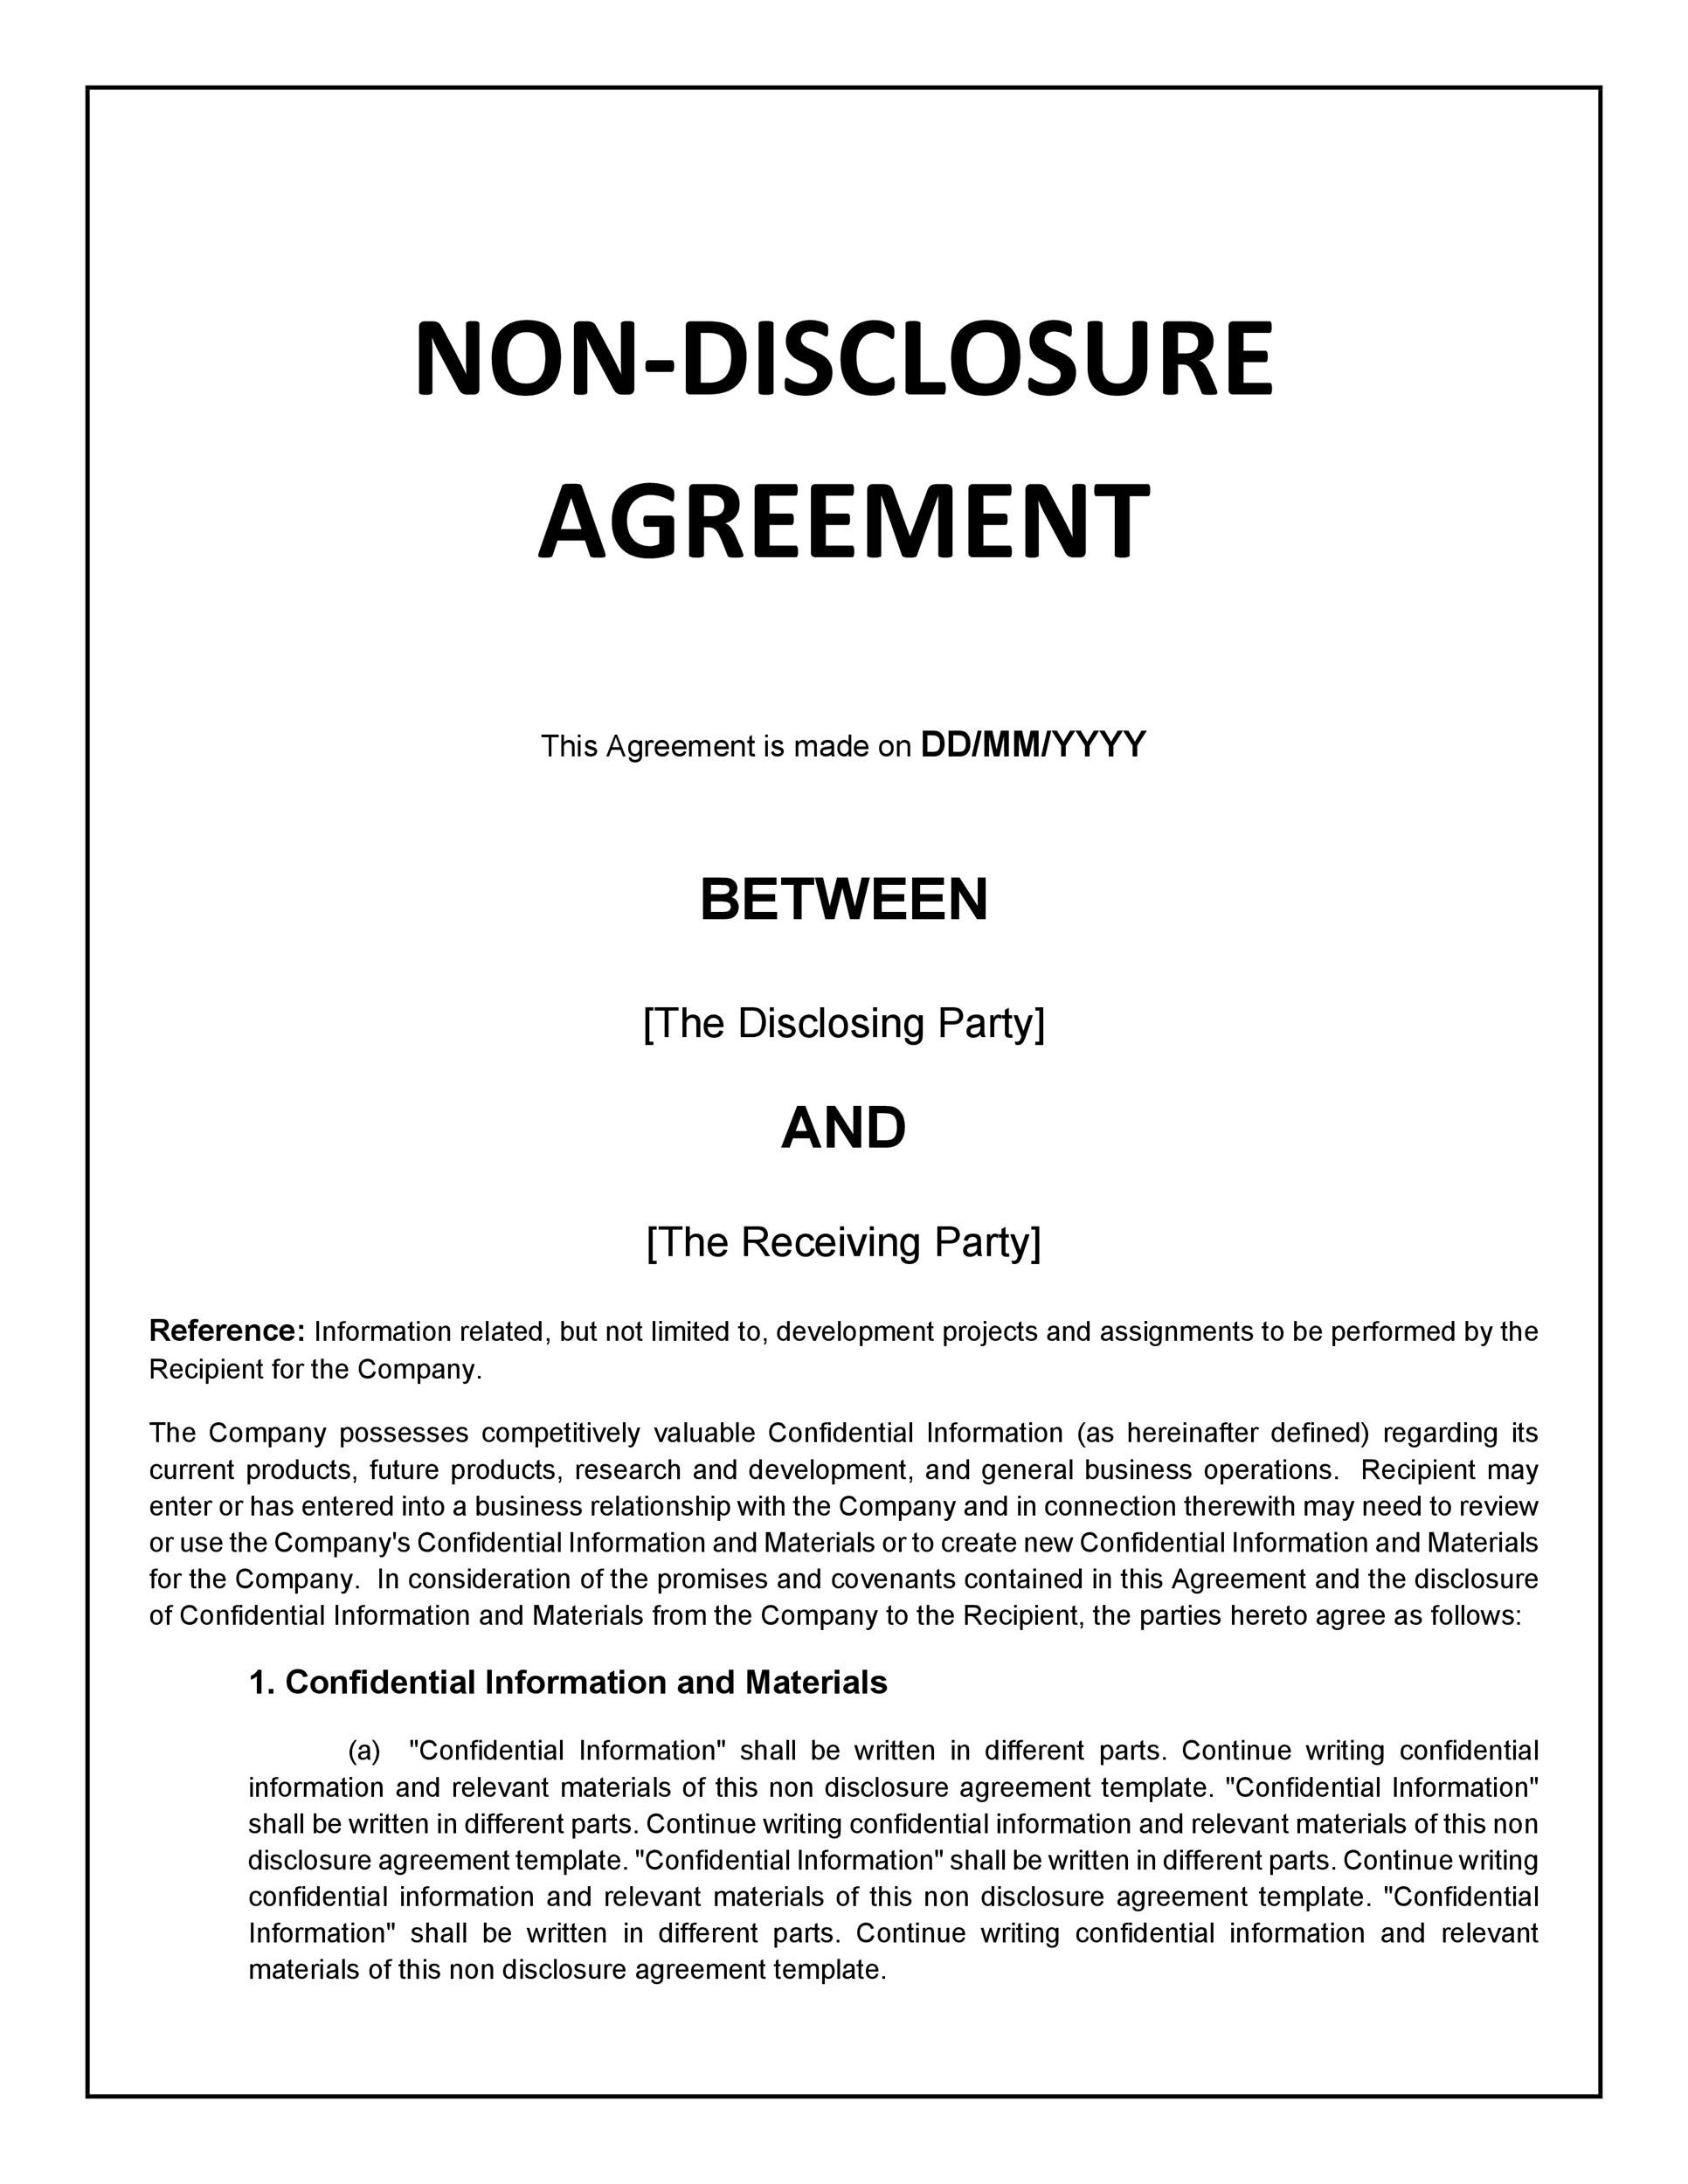 40 non disclosure agreement templates samples forms for Secrecy agreement template